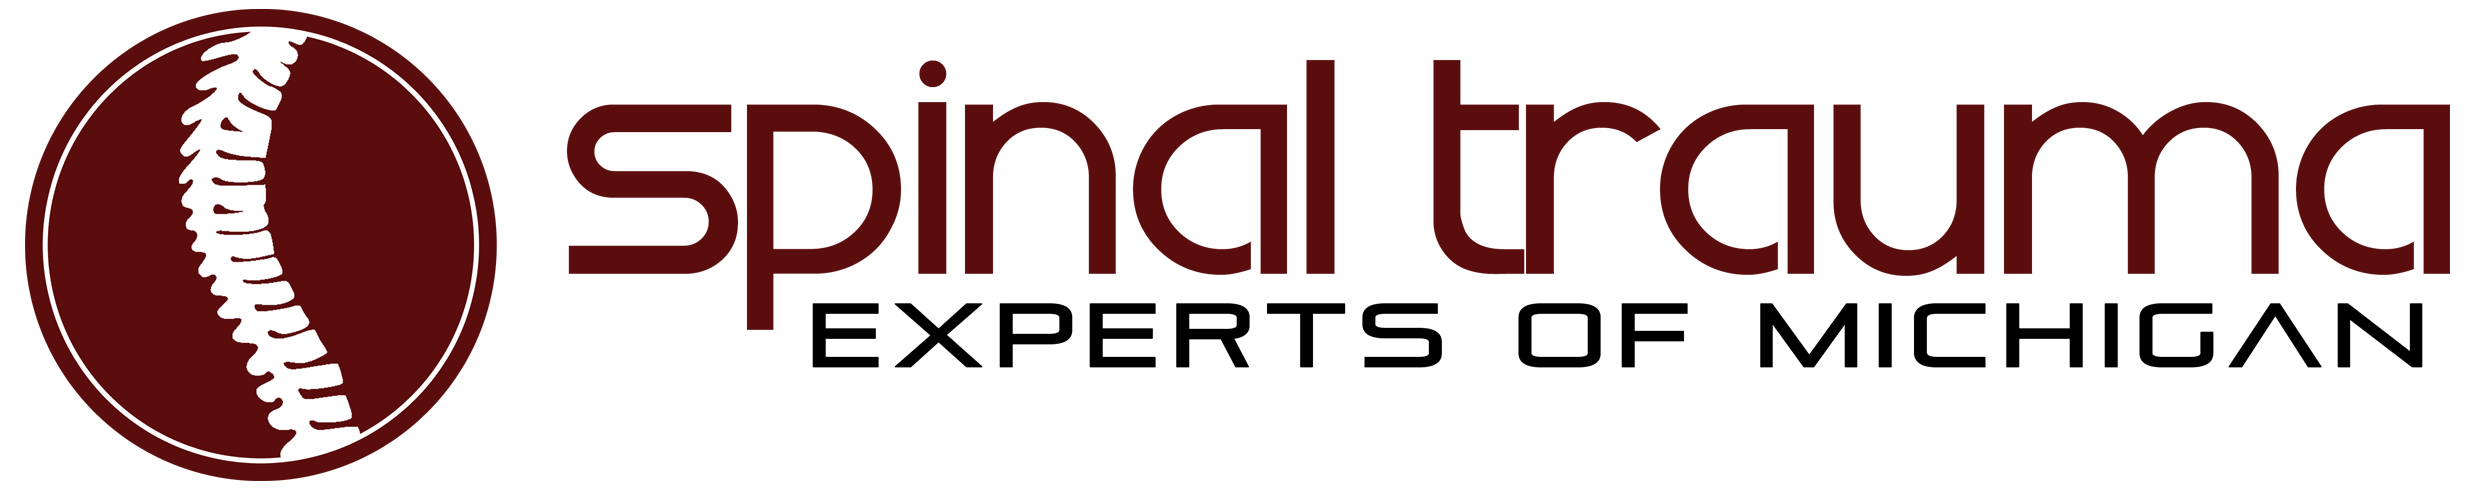 Spinal Trama Experts Final Small